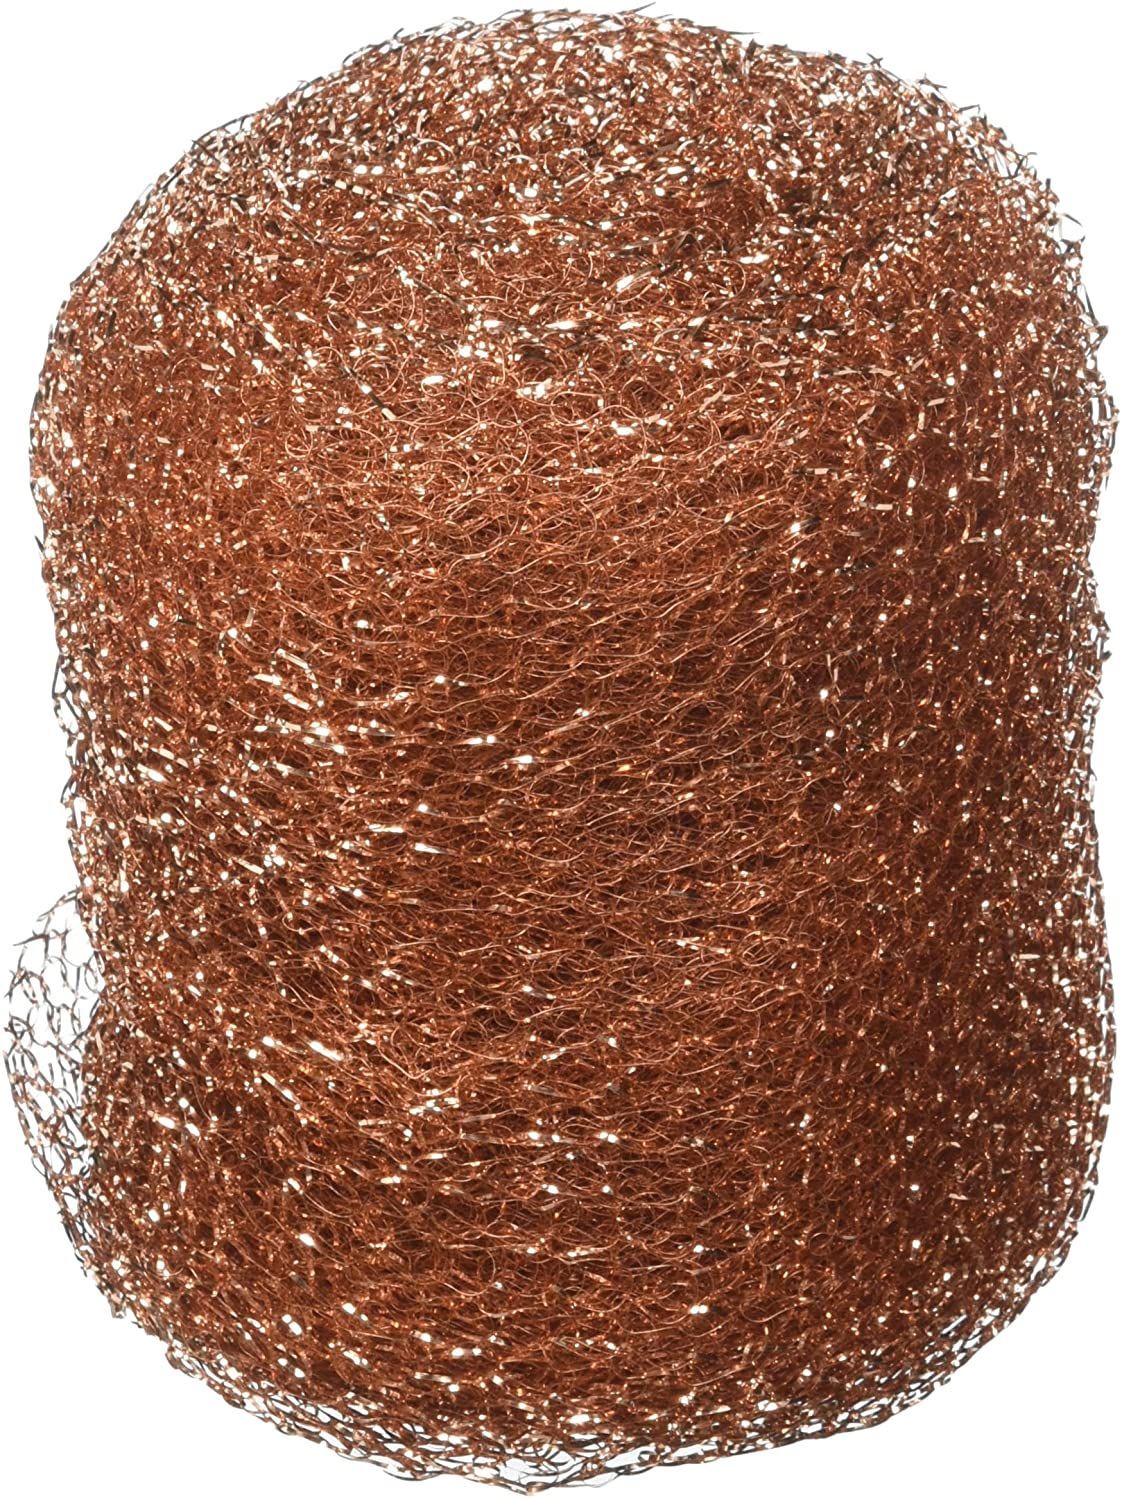 FlyBye Copper Mesh FBA_DS8016 Stuf-Fit Mesh 100' Rats, Mice, Birds Control, Full Size